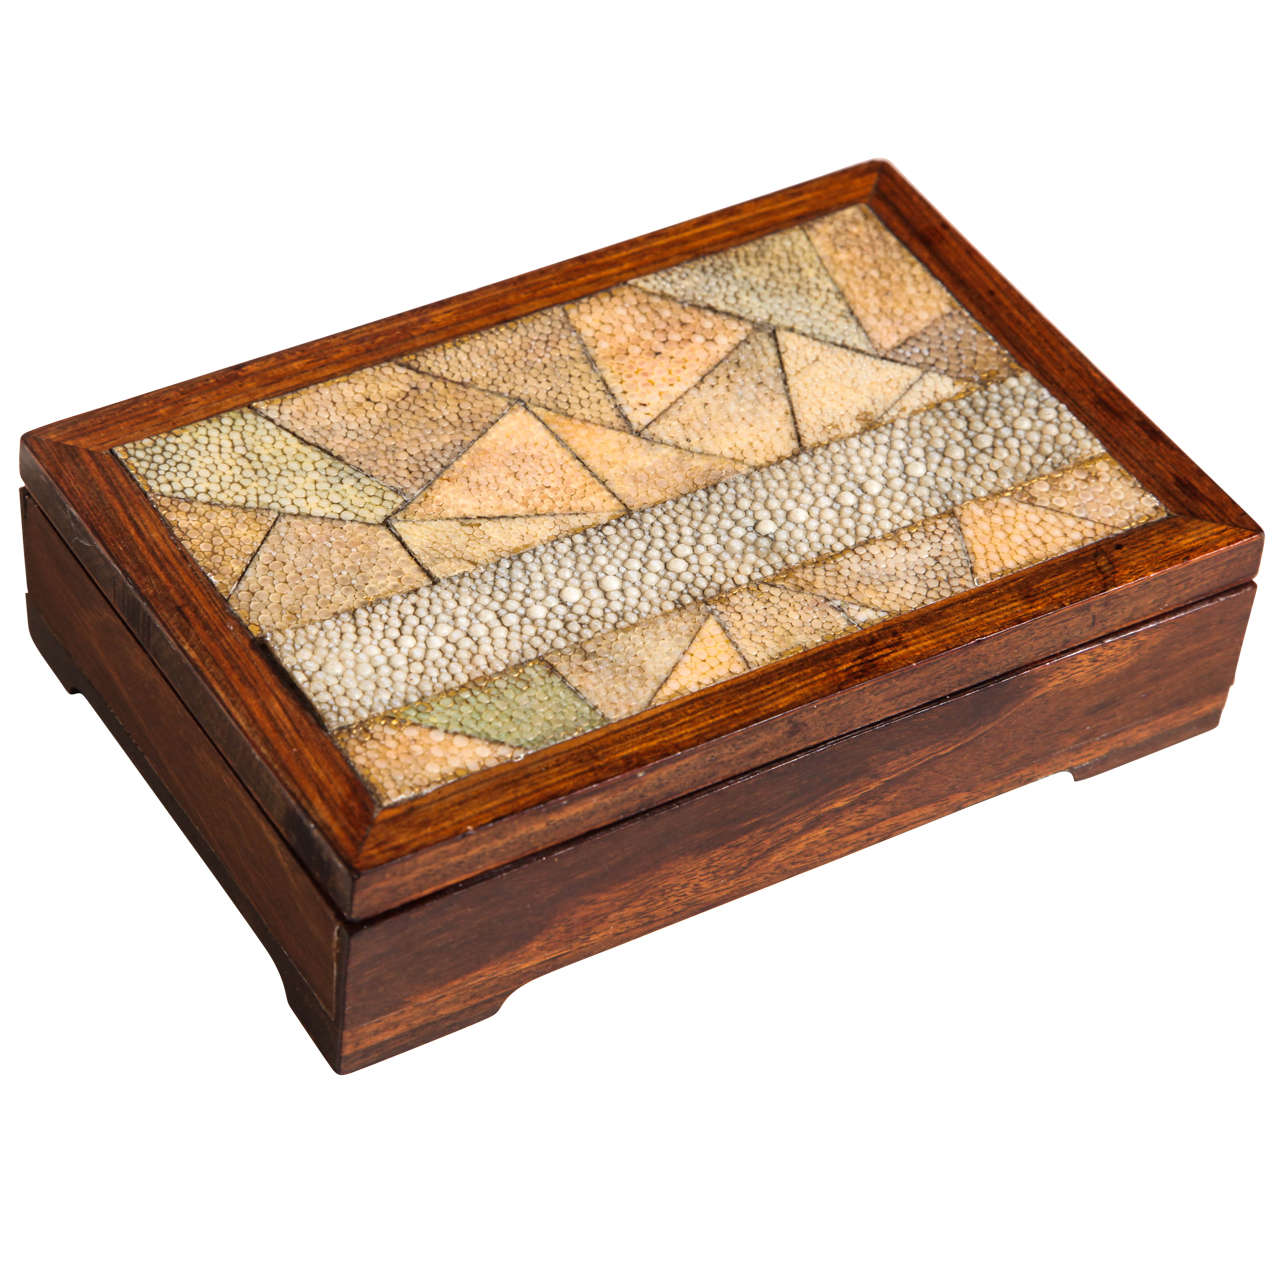 French Art Deco Wood and Shagreen Box